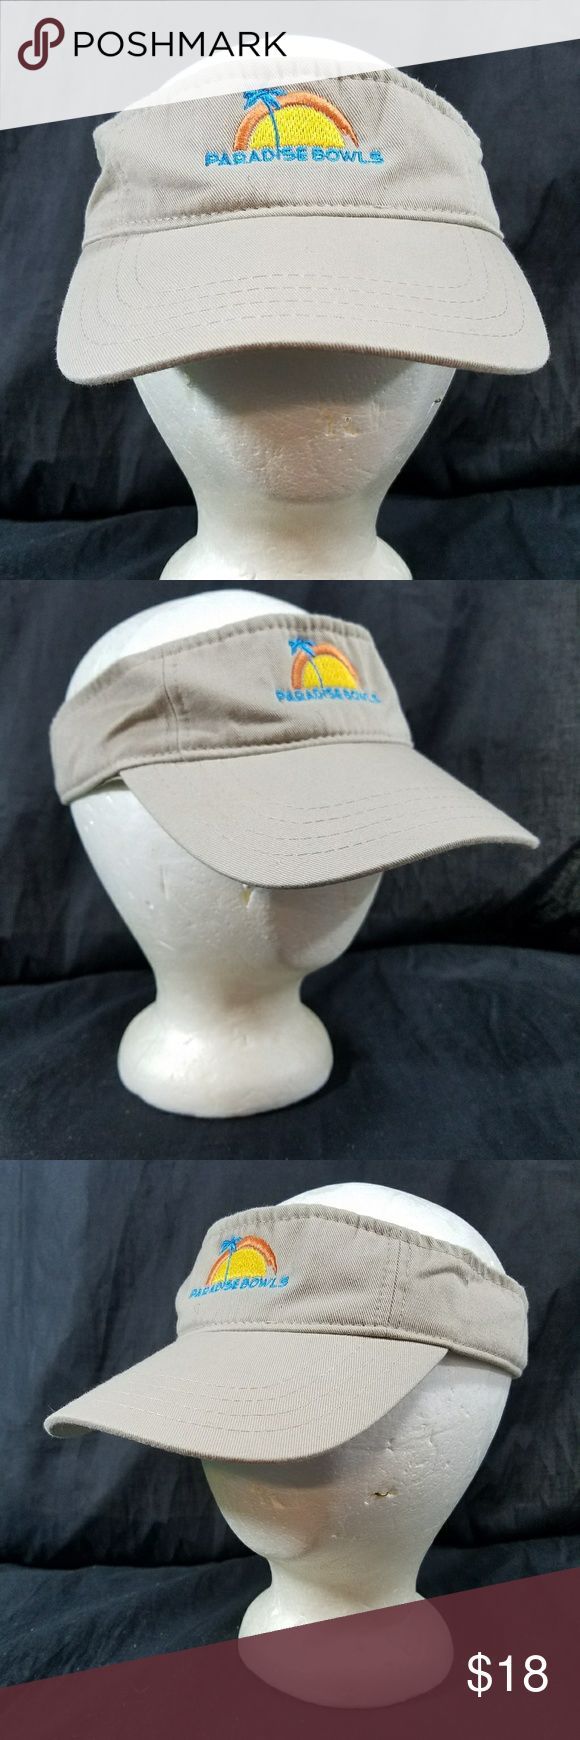 Paradise Bowls Hat Adjustable Golf Visor Cap Palm trees and sunrise. Preowned hat Good condition  Size is Adjustable unbranded Accessories Hats